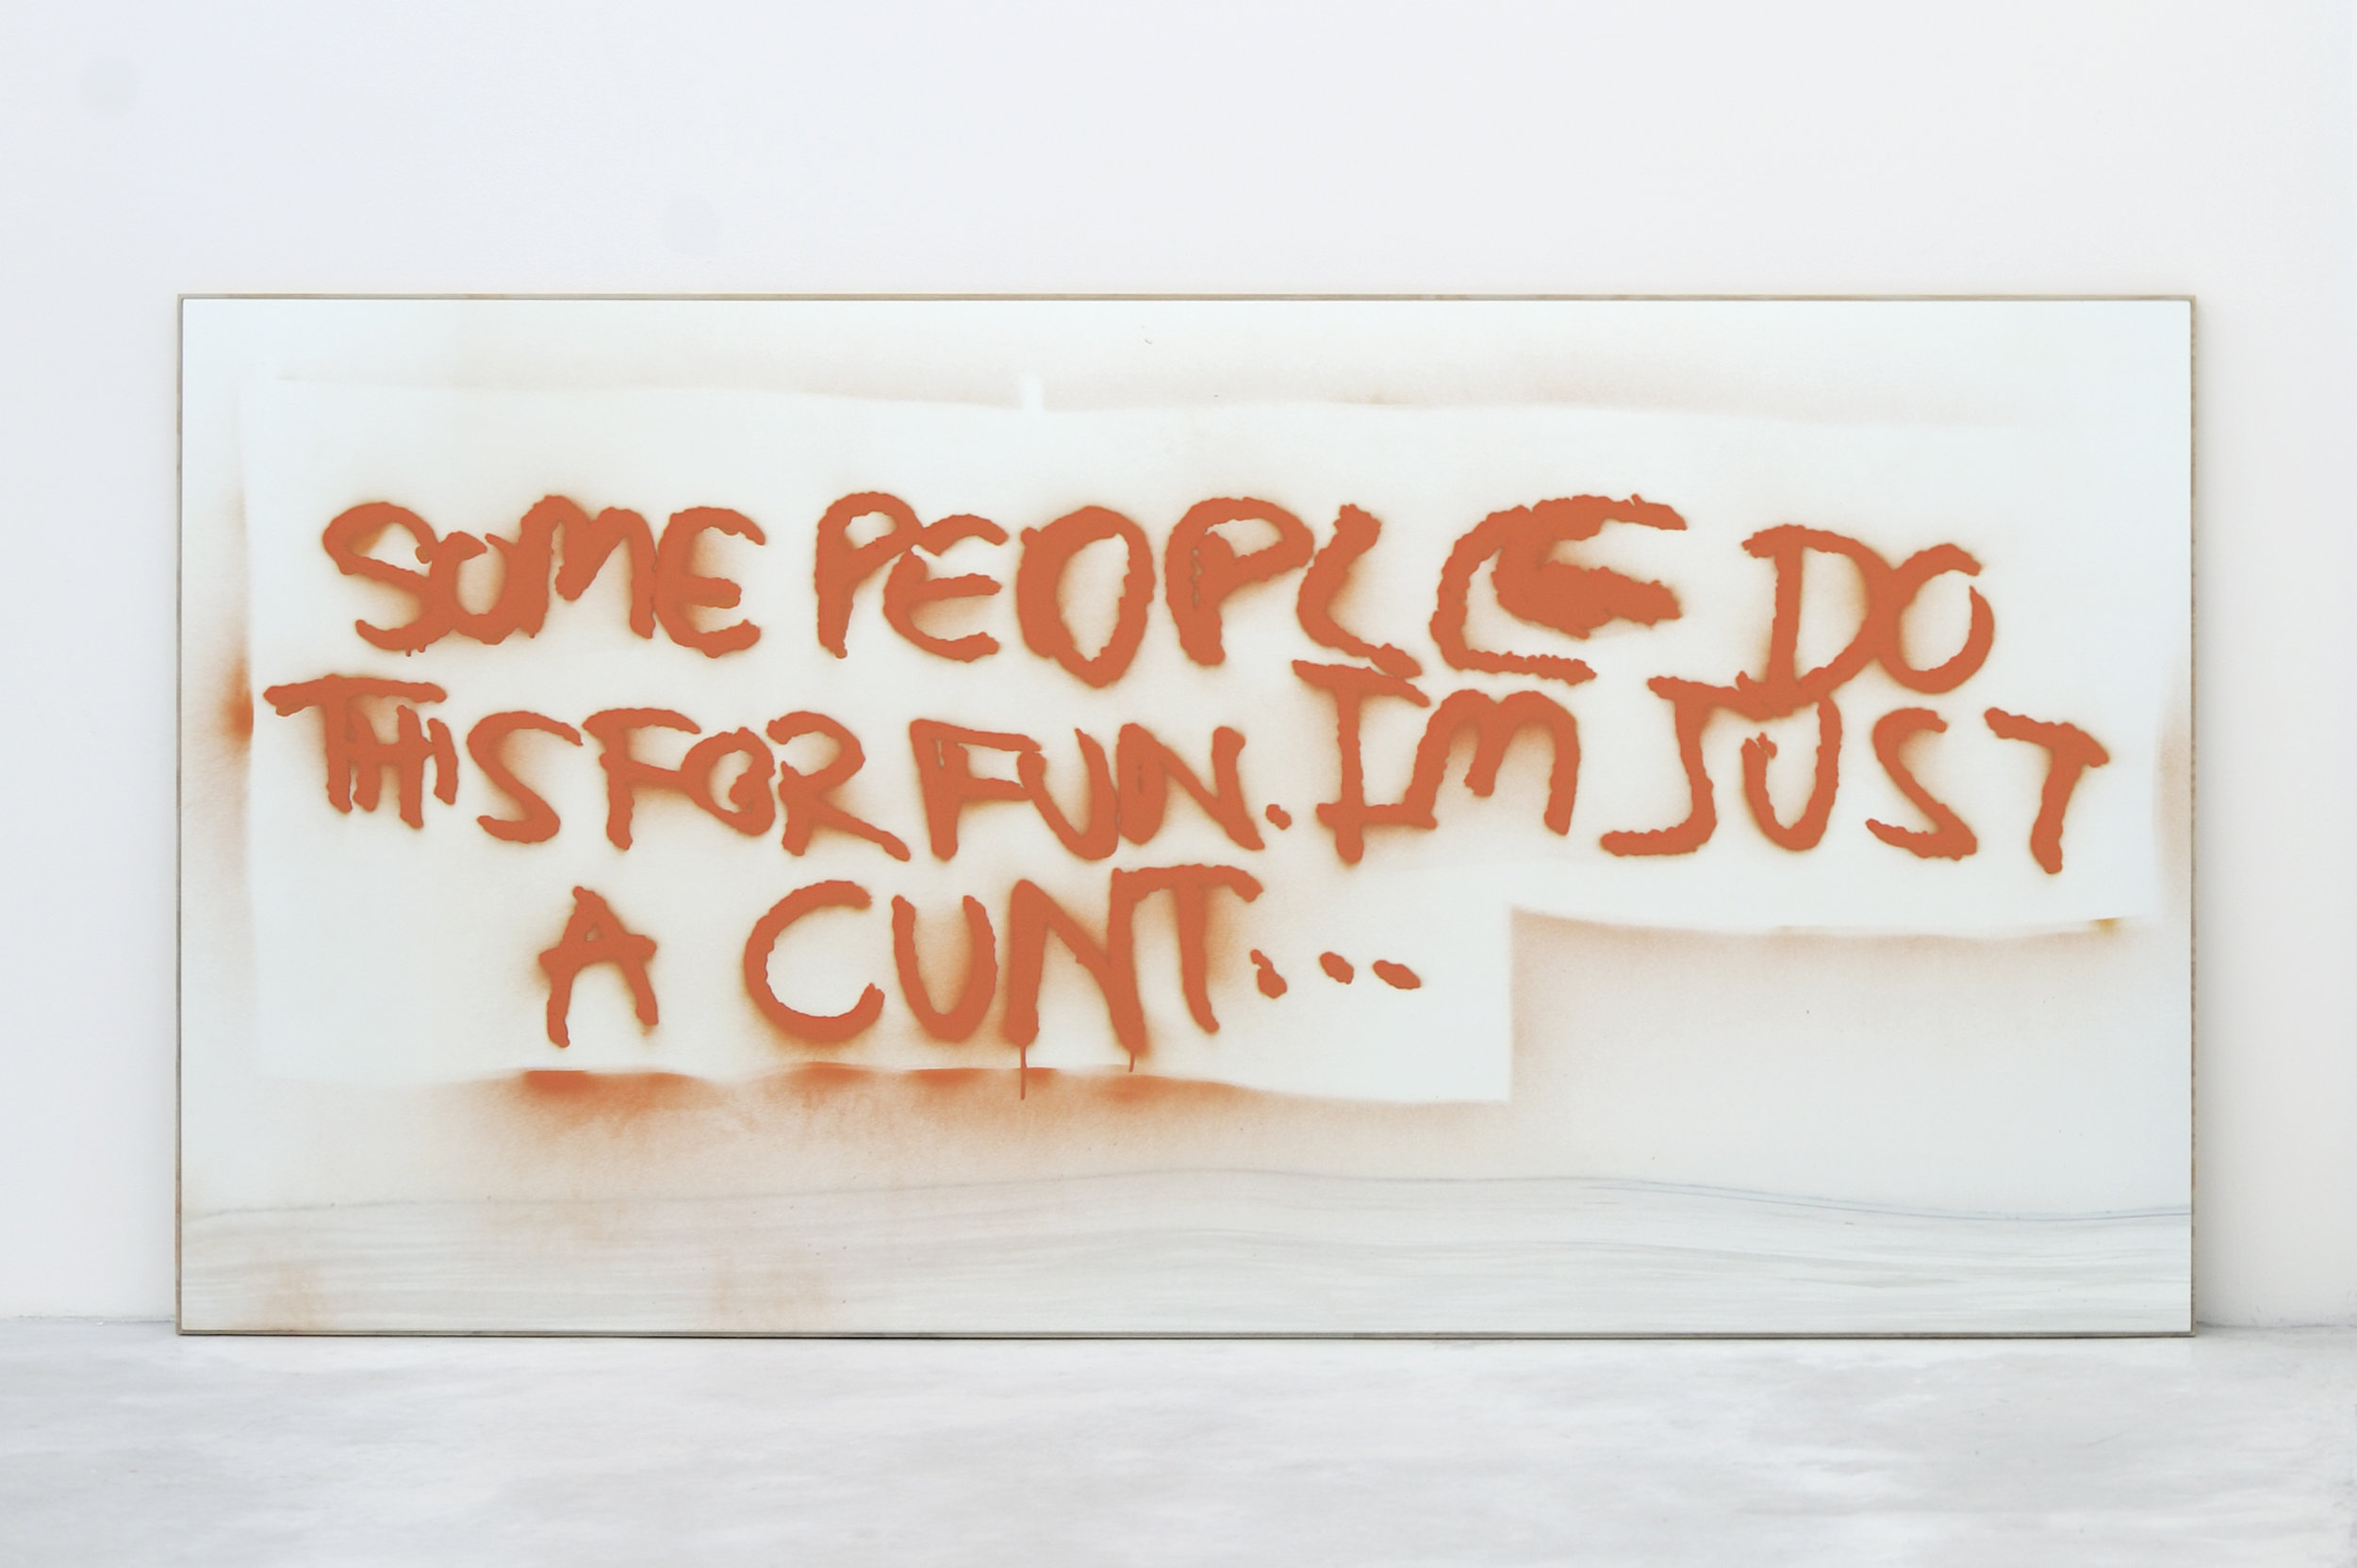 Some People Do This for Fun. I'm Just A Cunt..., 2010 spray enamel on mirror on plywood 122 x 244 x 2,5 cm - 48 x 96 x 1 inches